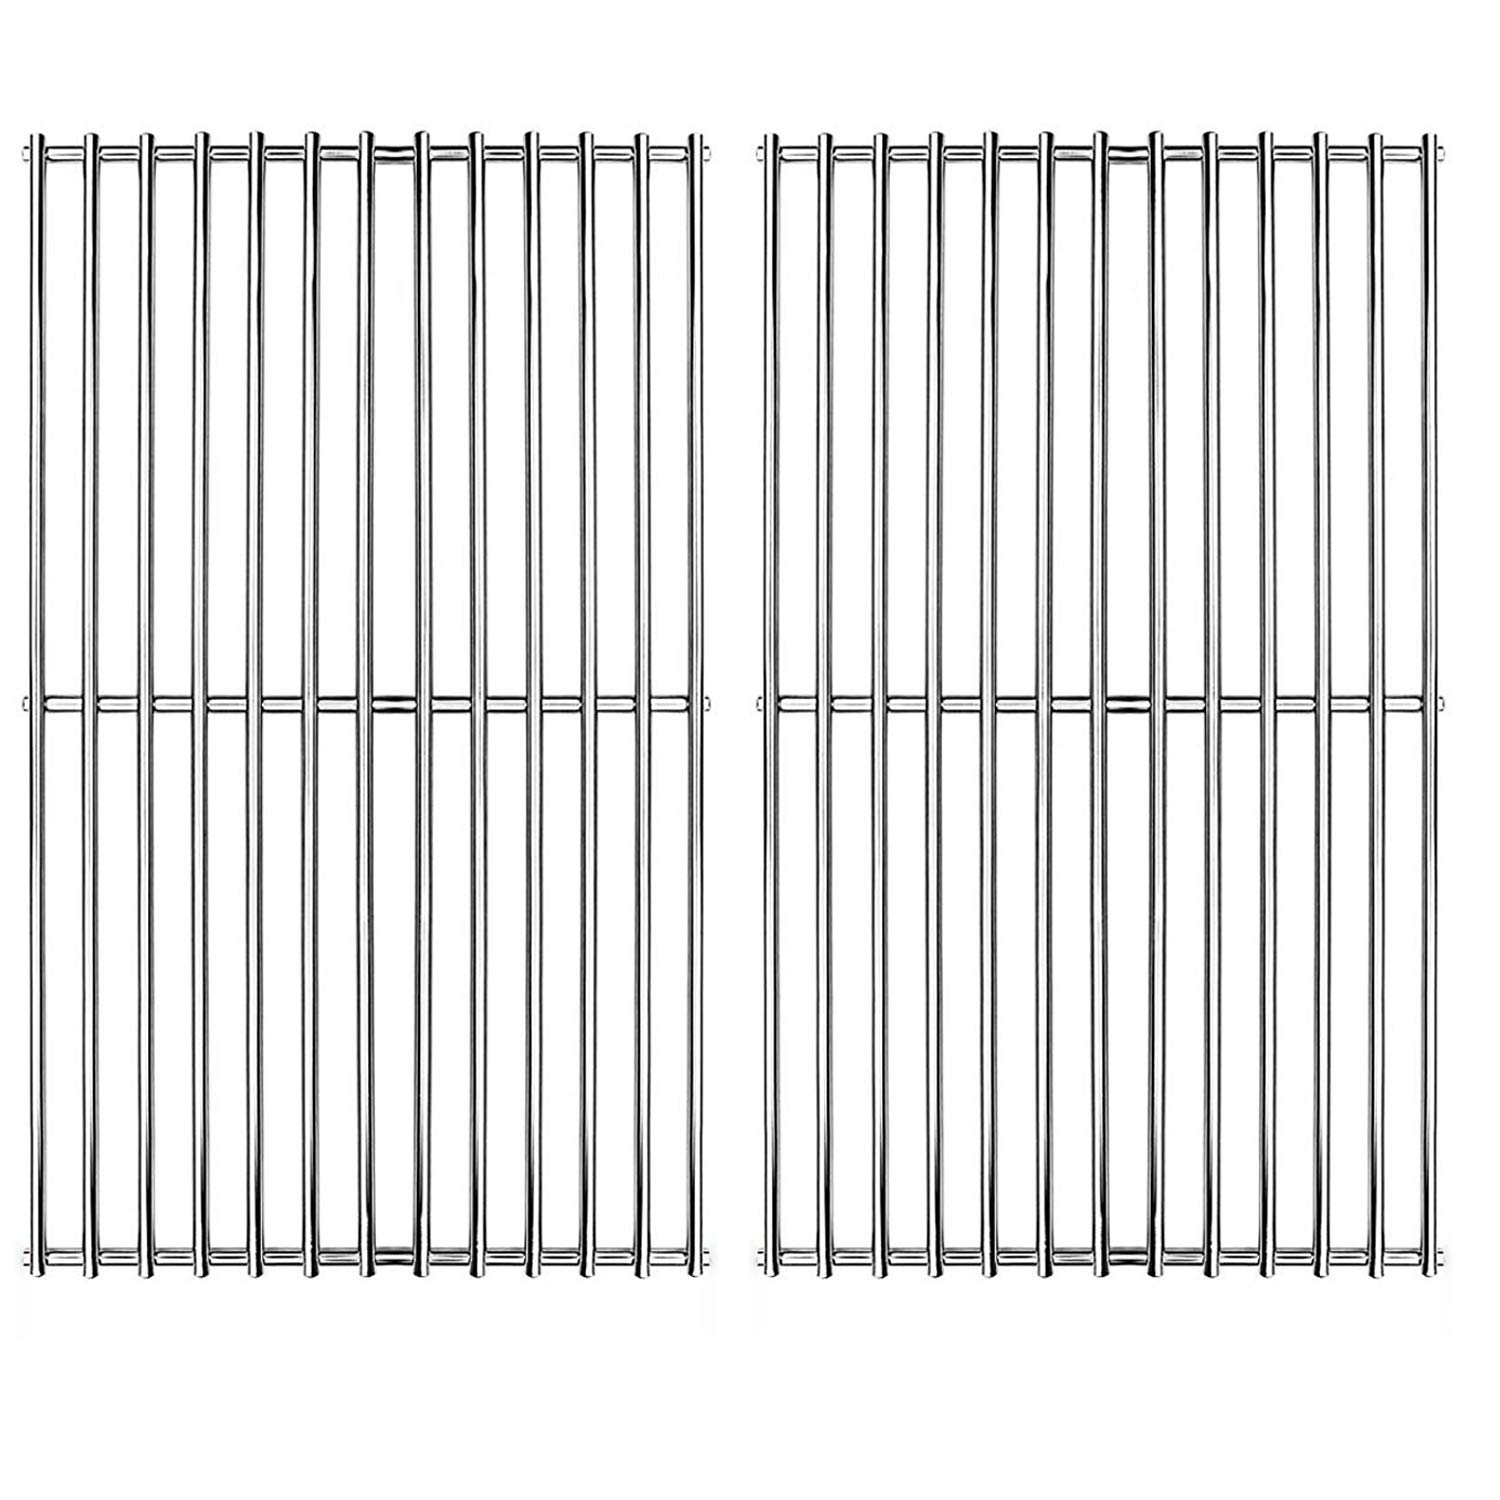 Hongso Stainless Grill Grate,SUS304,17 3/16 x 13 1/2 inch Each Cooking Grid Grate, for Grill Master 720-0697, Nexgrill and Uniflame Gas Grills (2 Pieces, SCI812) by Hongso